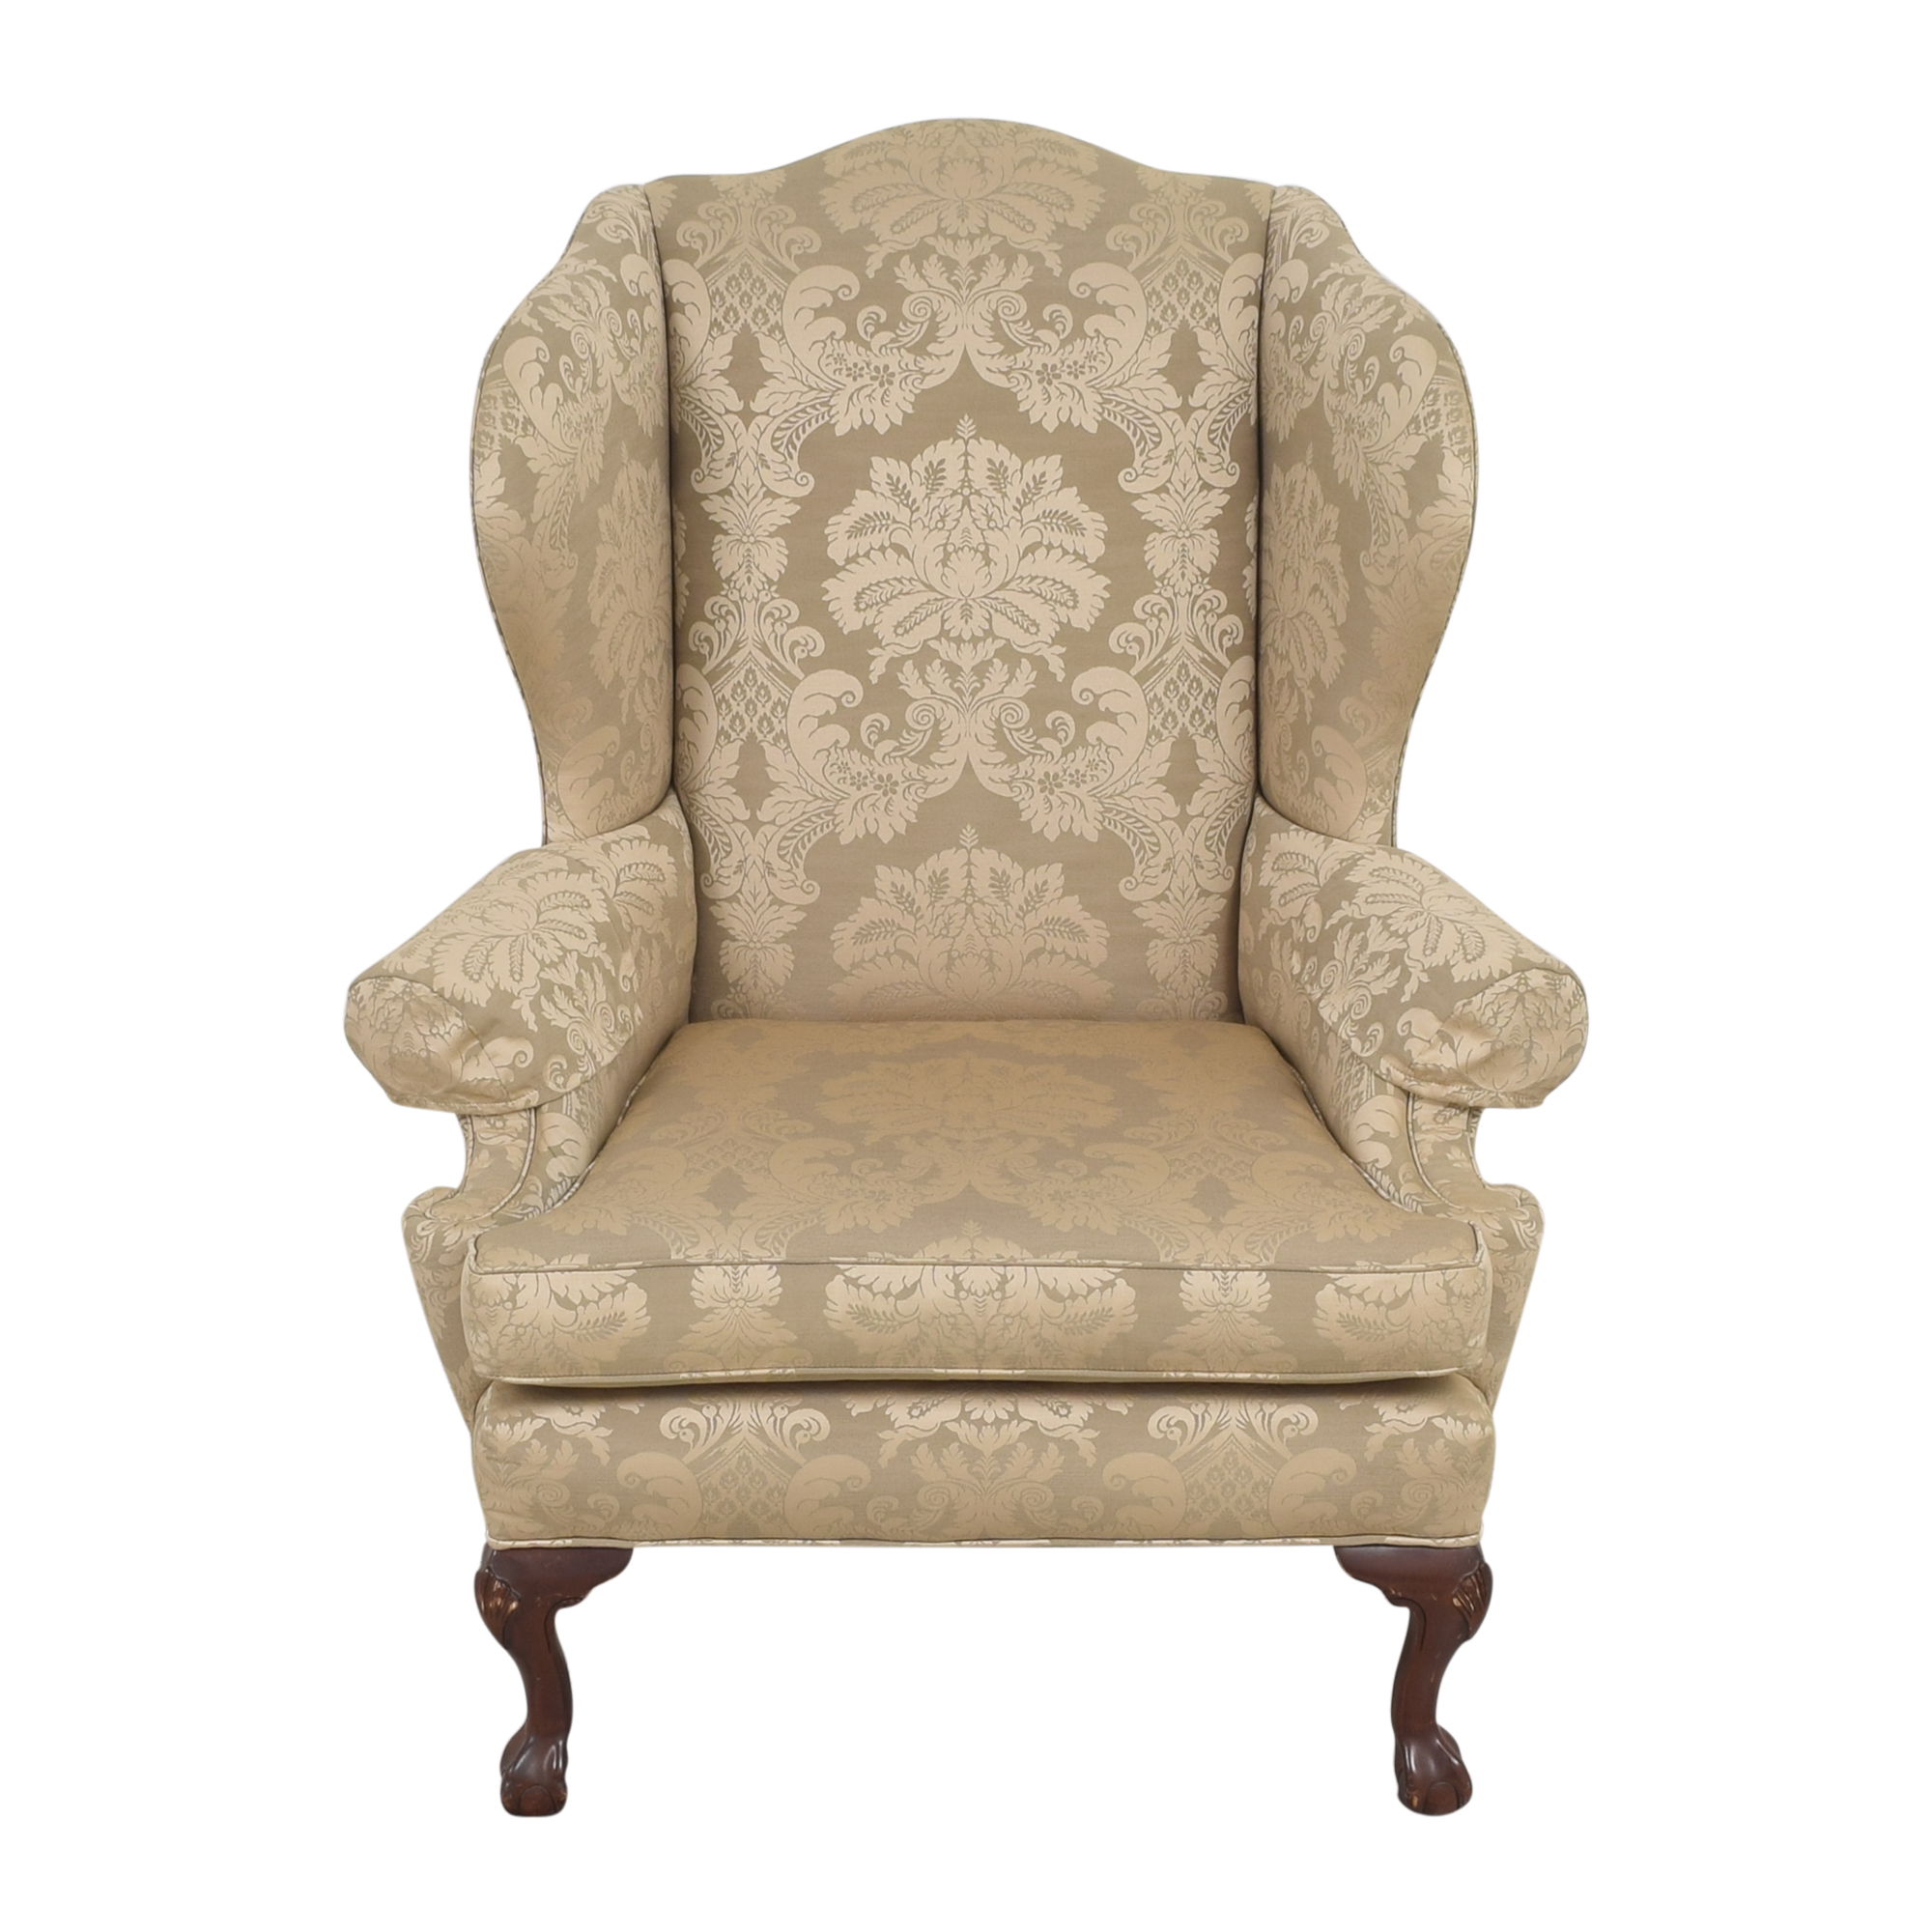 Ethan Allen Ethan Allen Wing Accent Chair dimensions